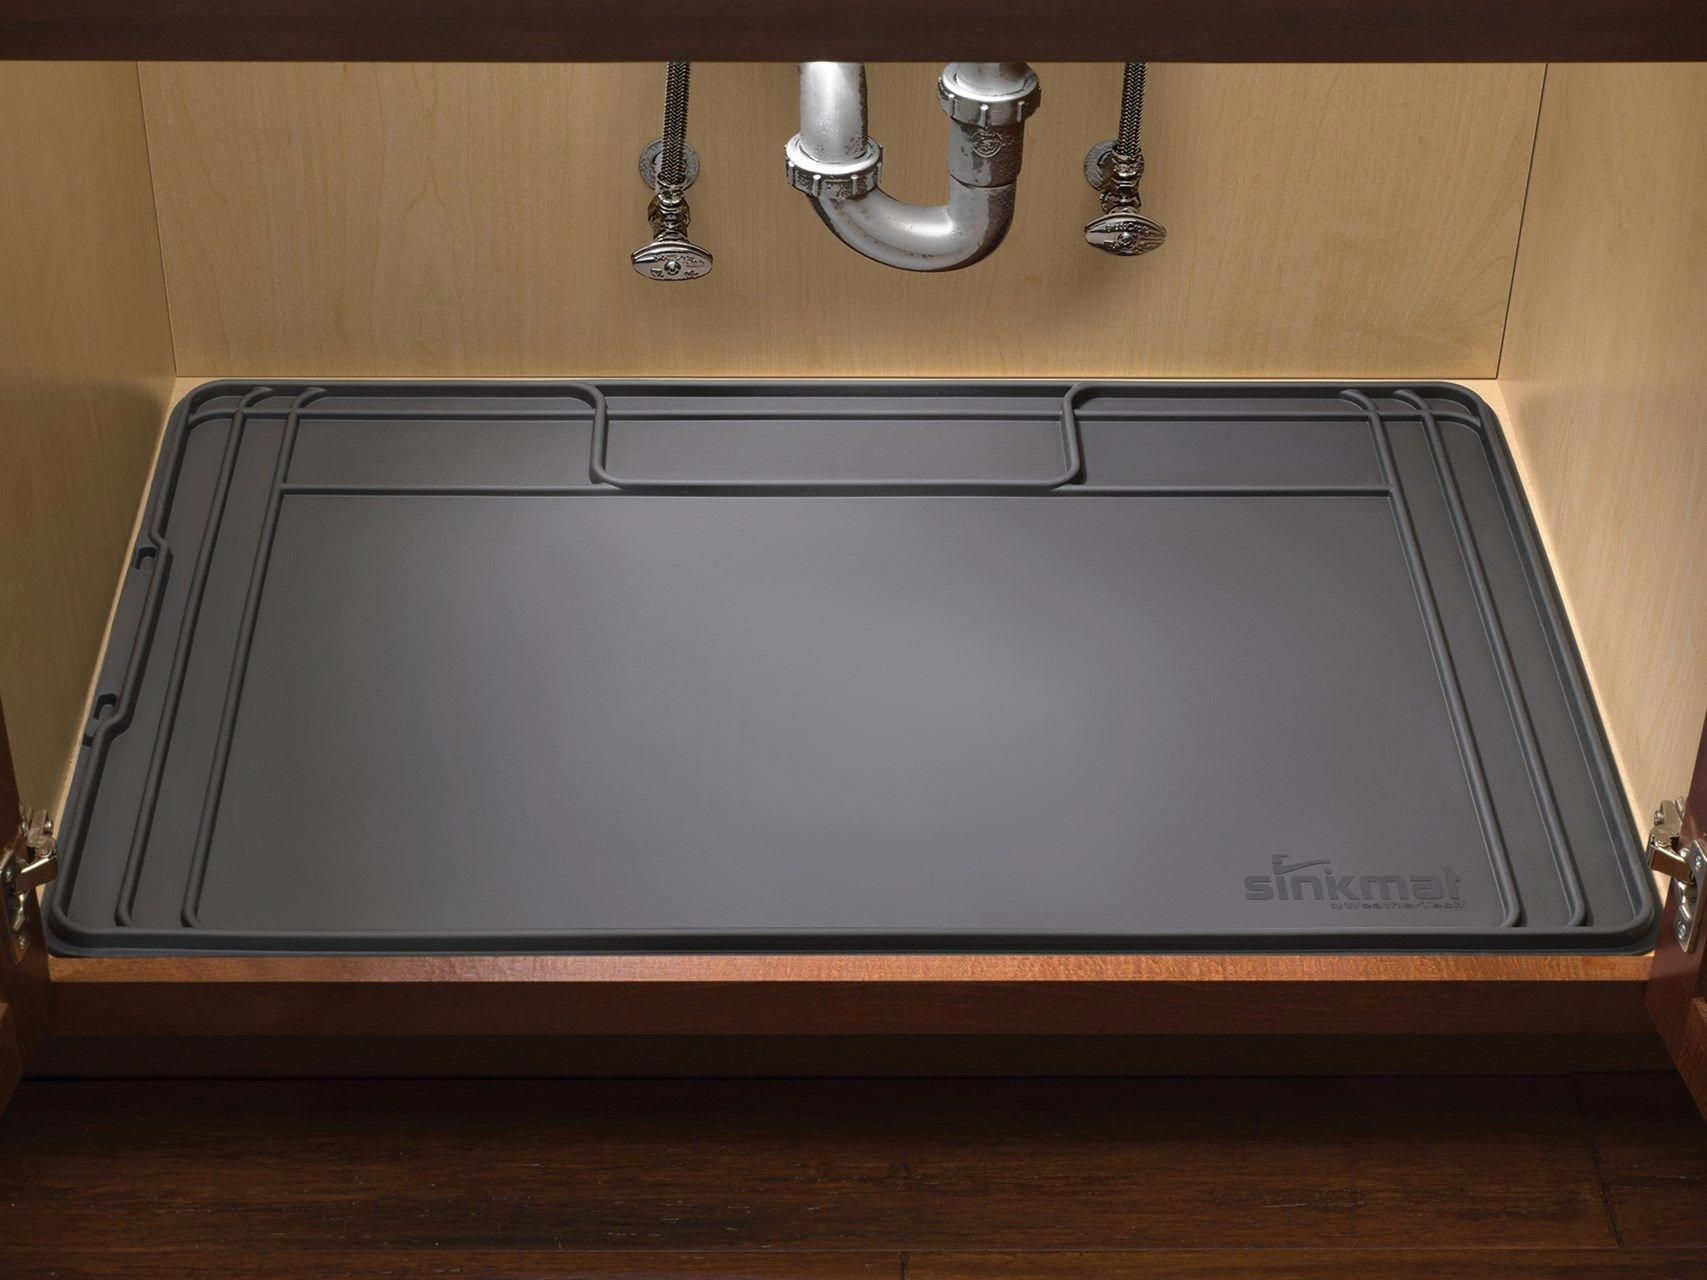 WeatherTech SinkMat Under the Sink Protection